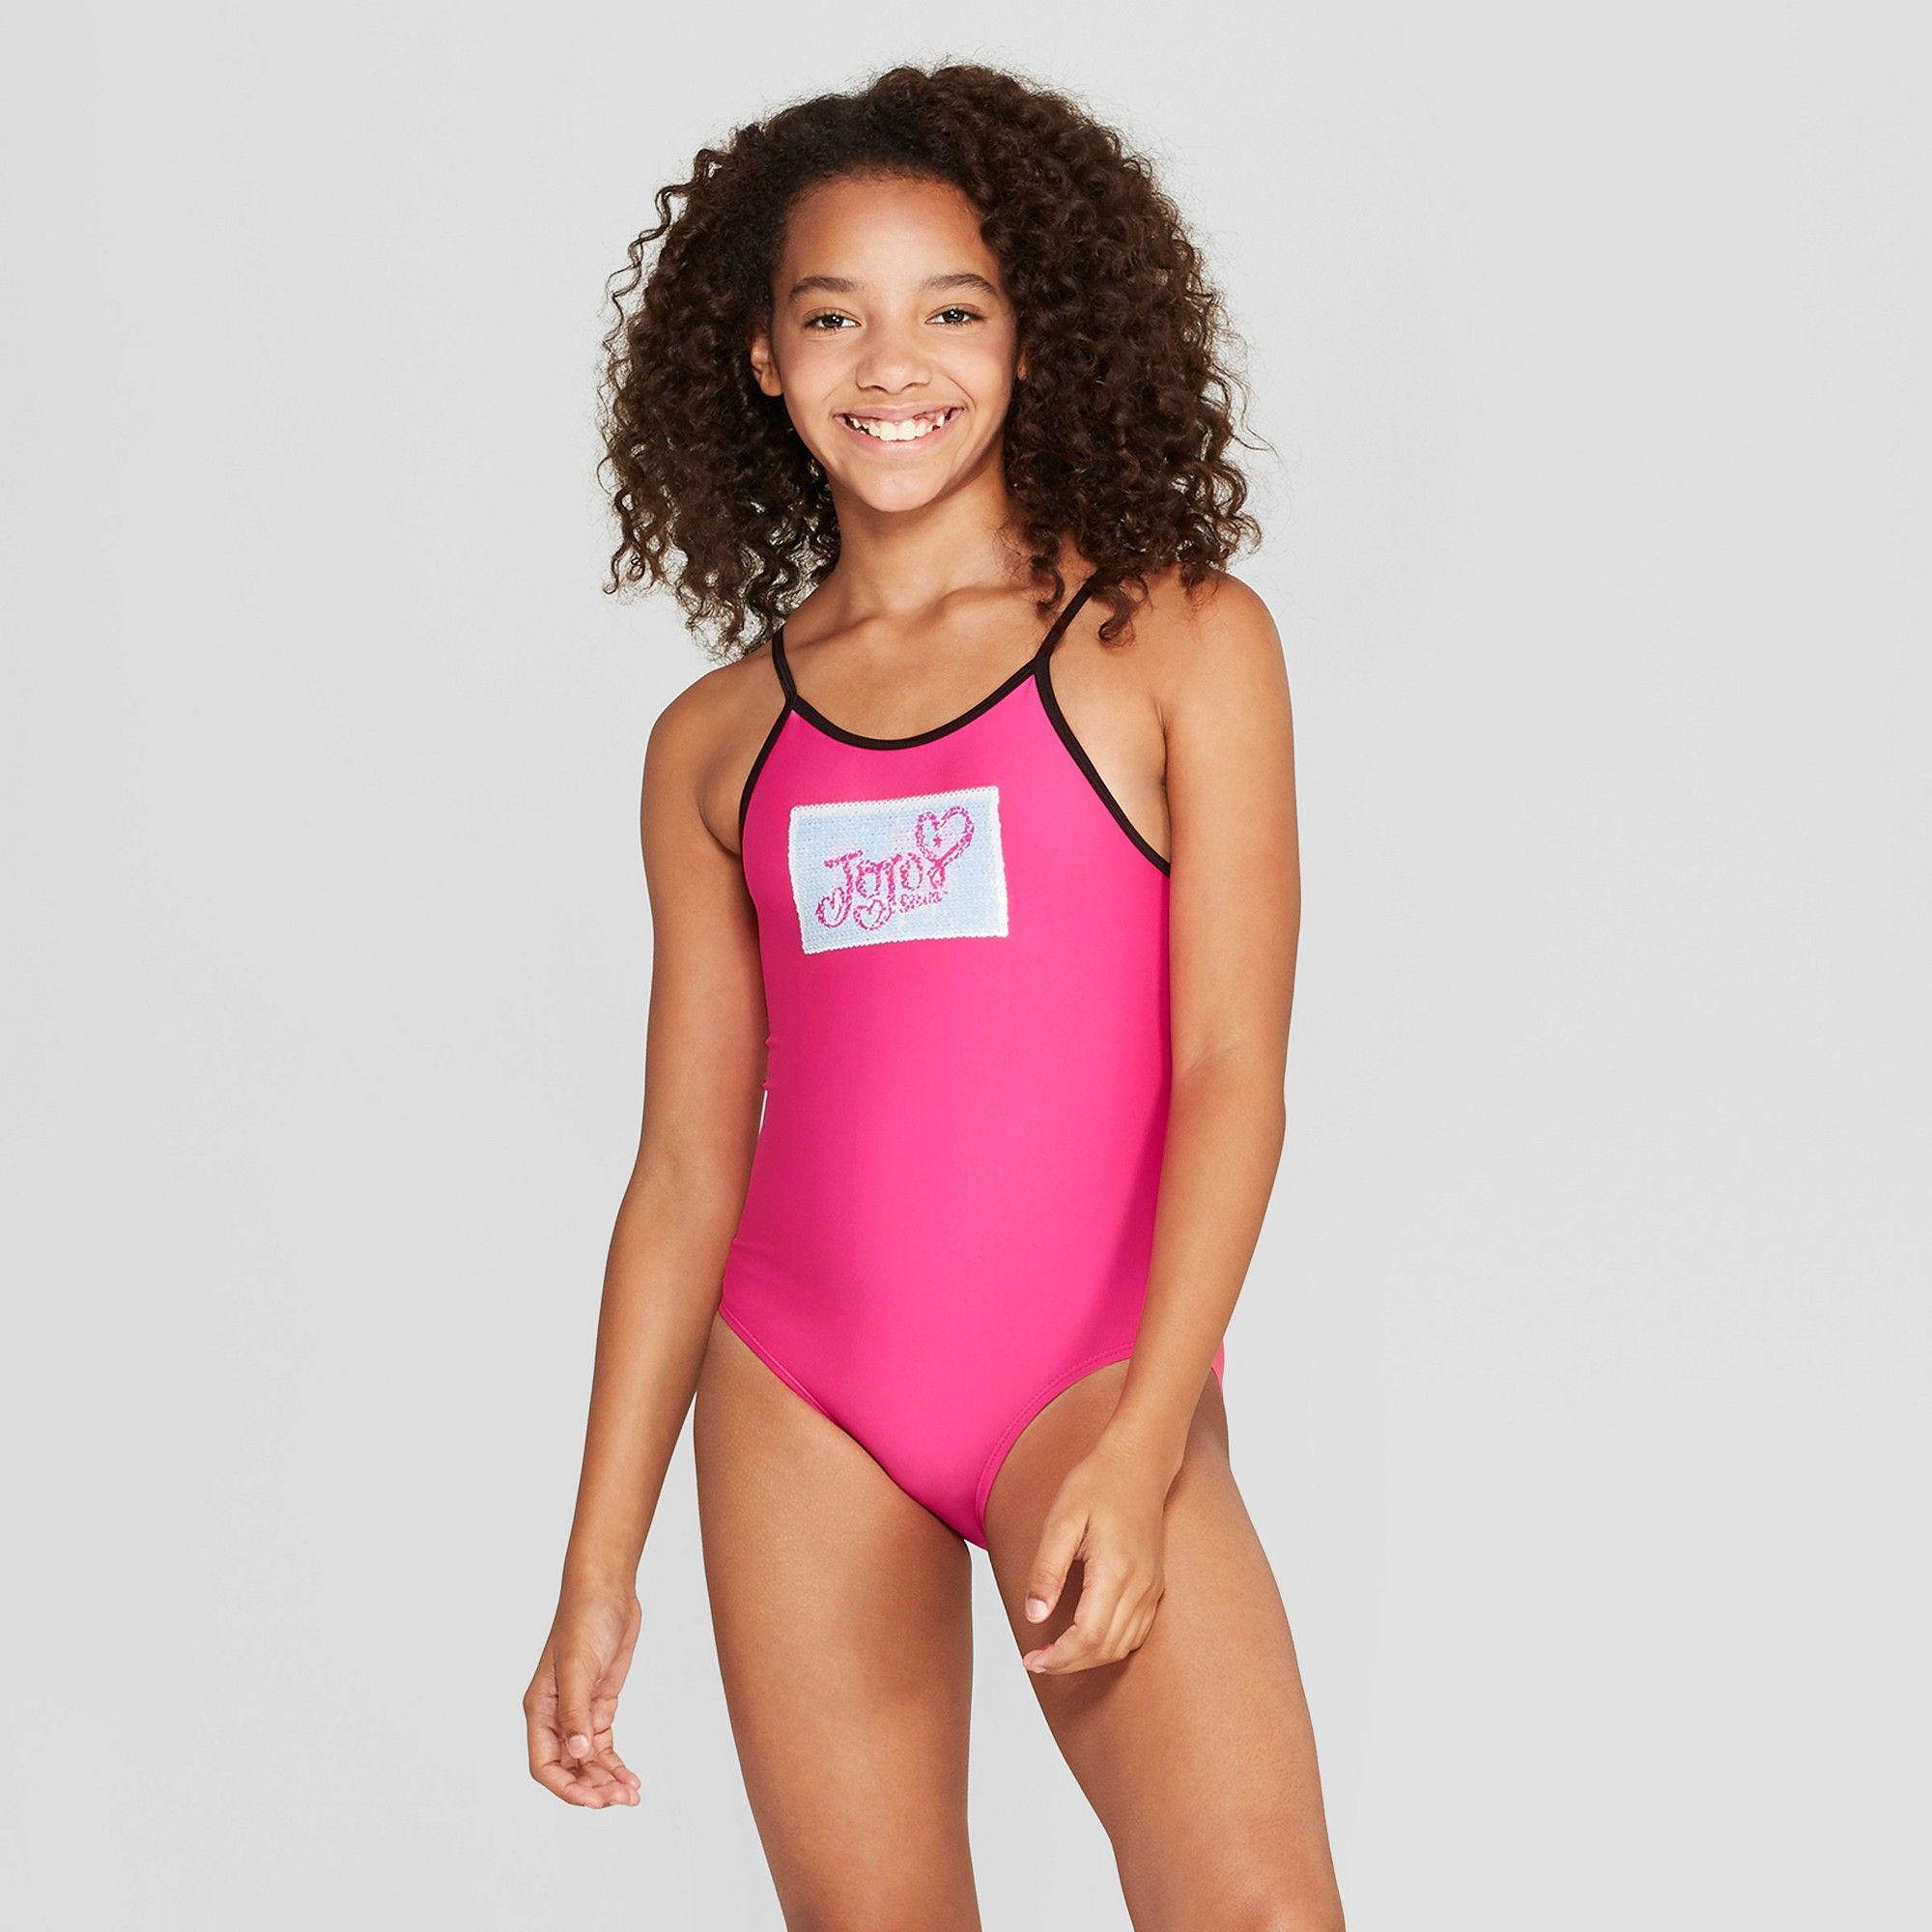 582ab3556b1ee Girls' Flip Sequins JoJo Siwa One Piece Swimsuit - Pink S in 2019 ...